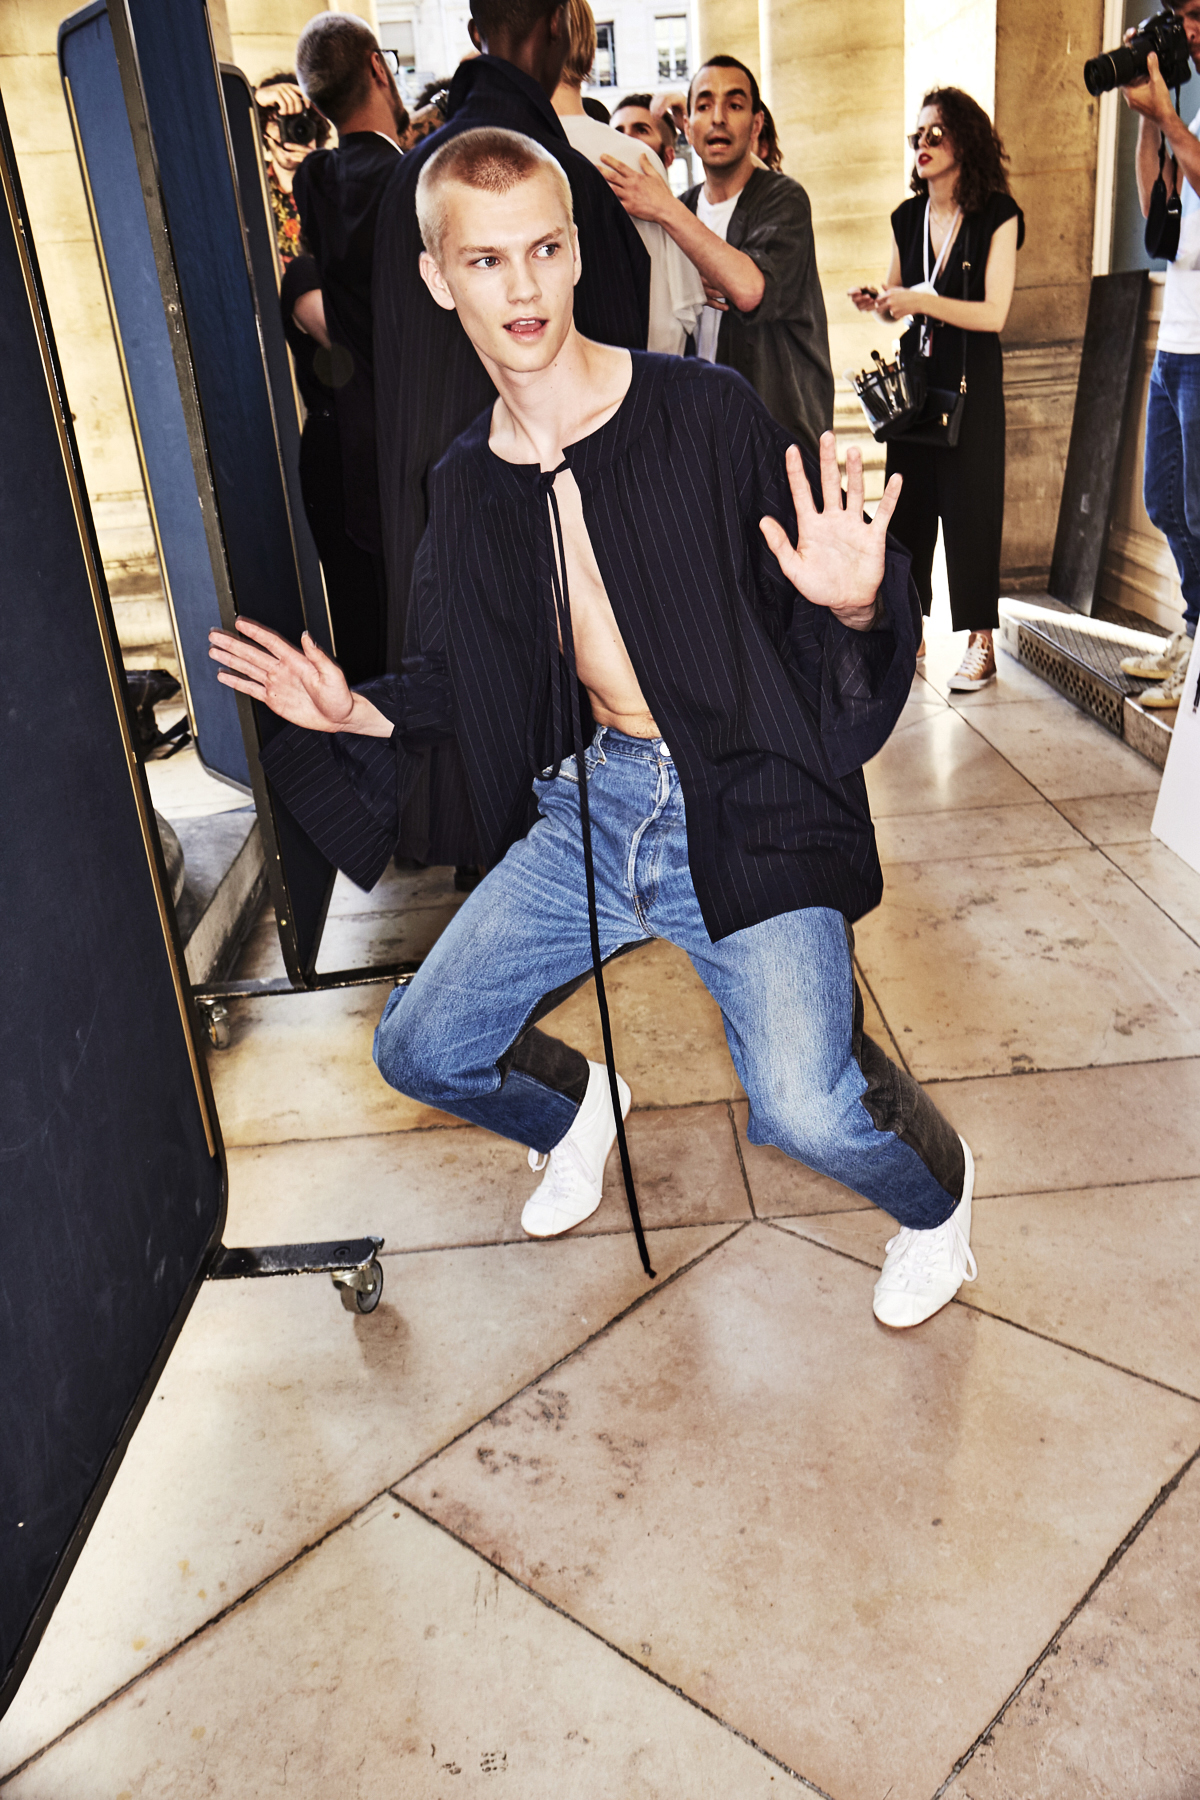 Hed Mayner SS18 Men Fashion Show Paris Backstage